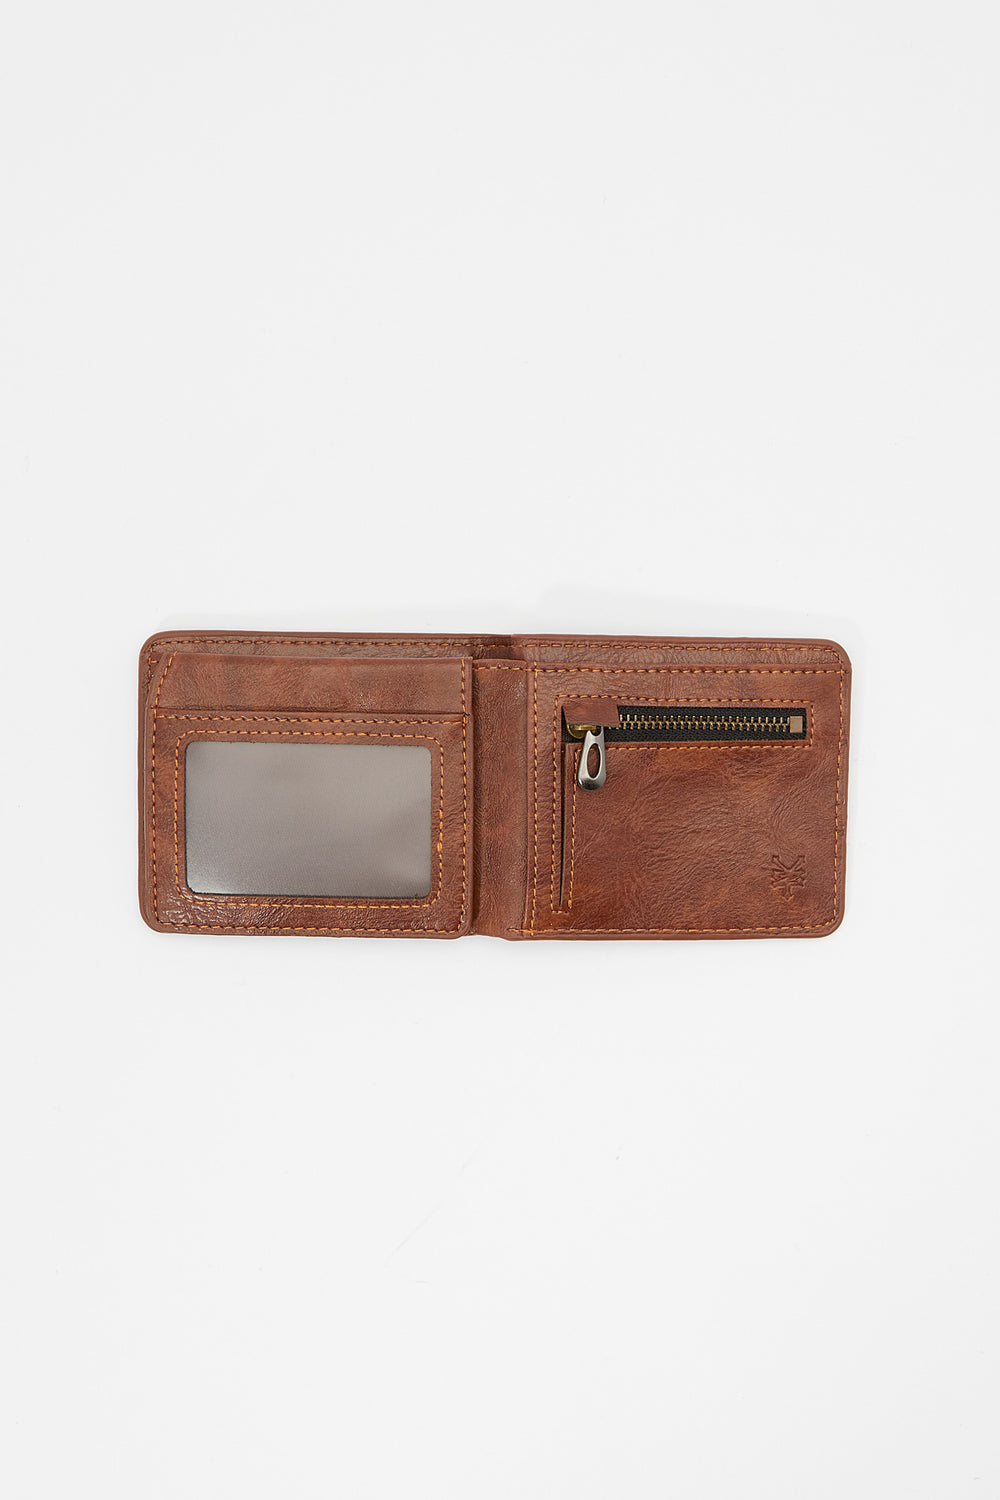 Zoo York Mens Faux Leather Wallet Brown